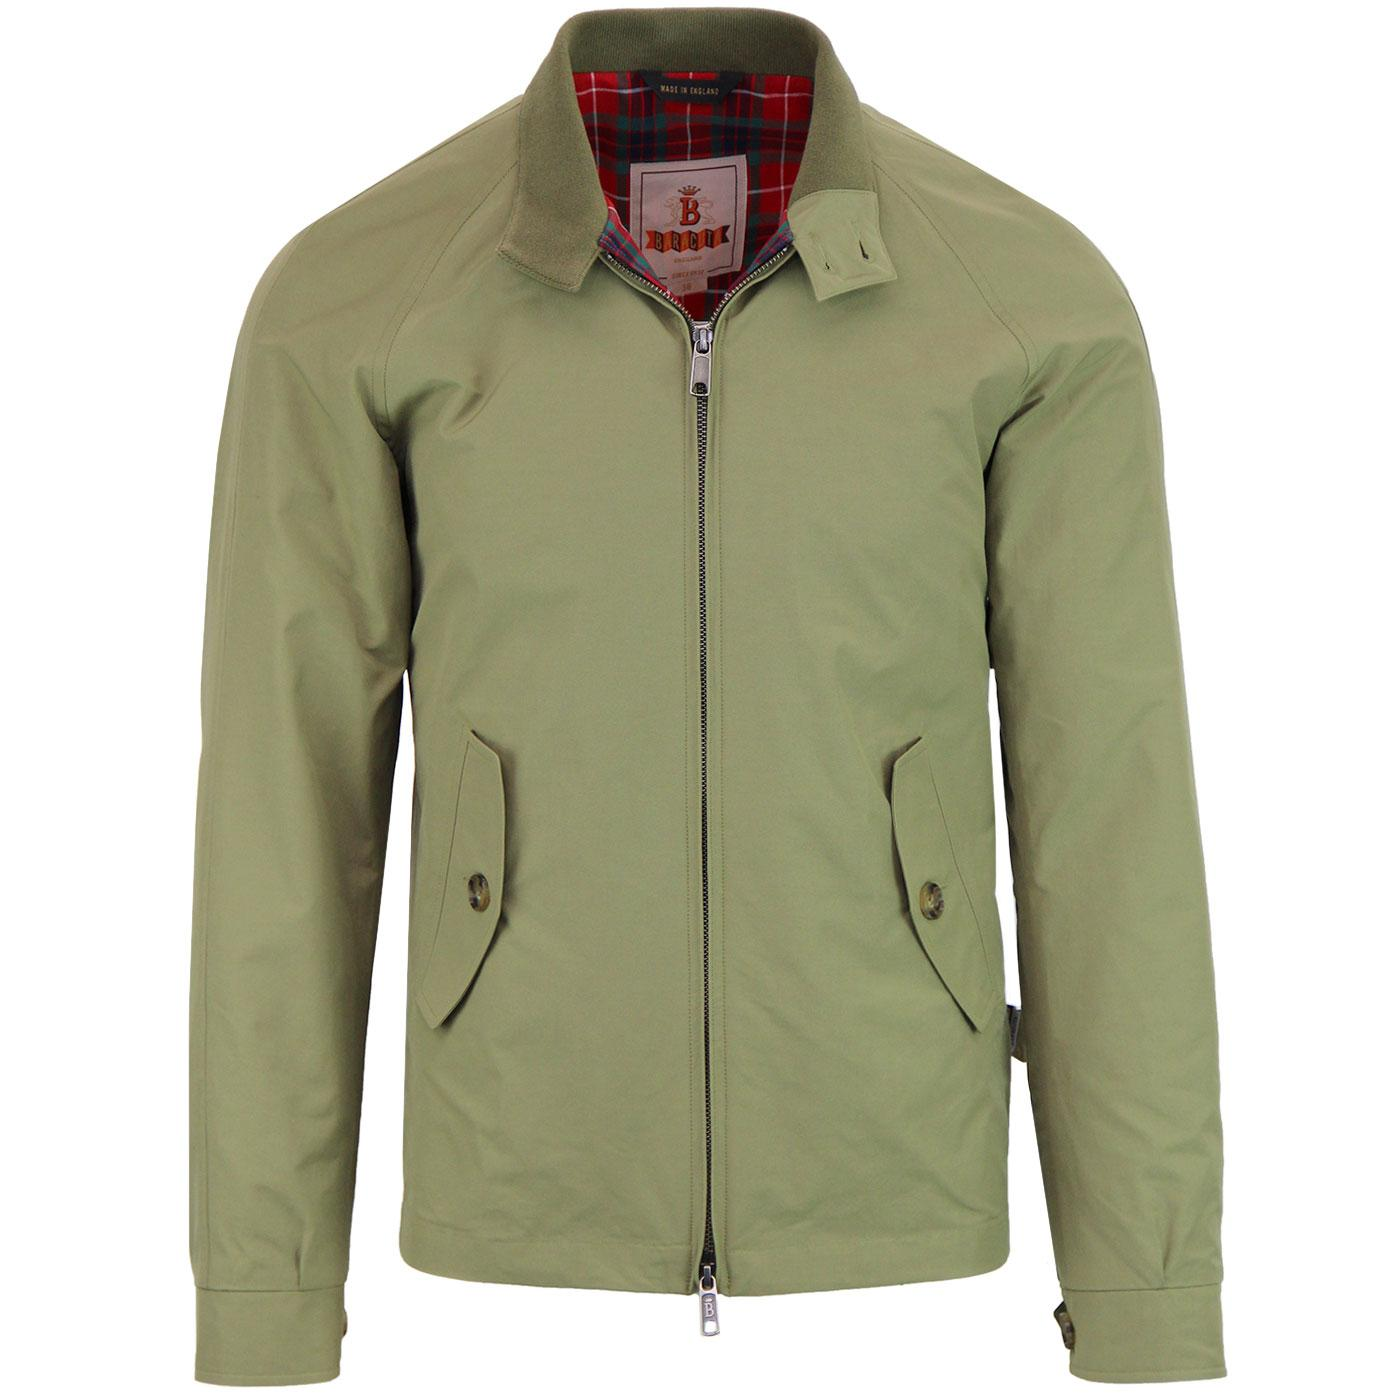 BARACUTA G4 Original Made in England Harrington O